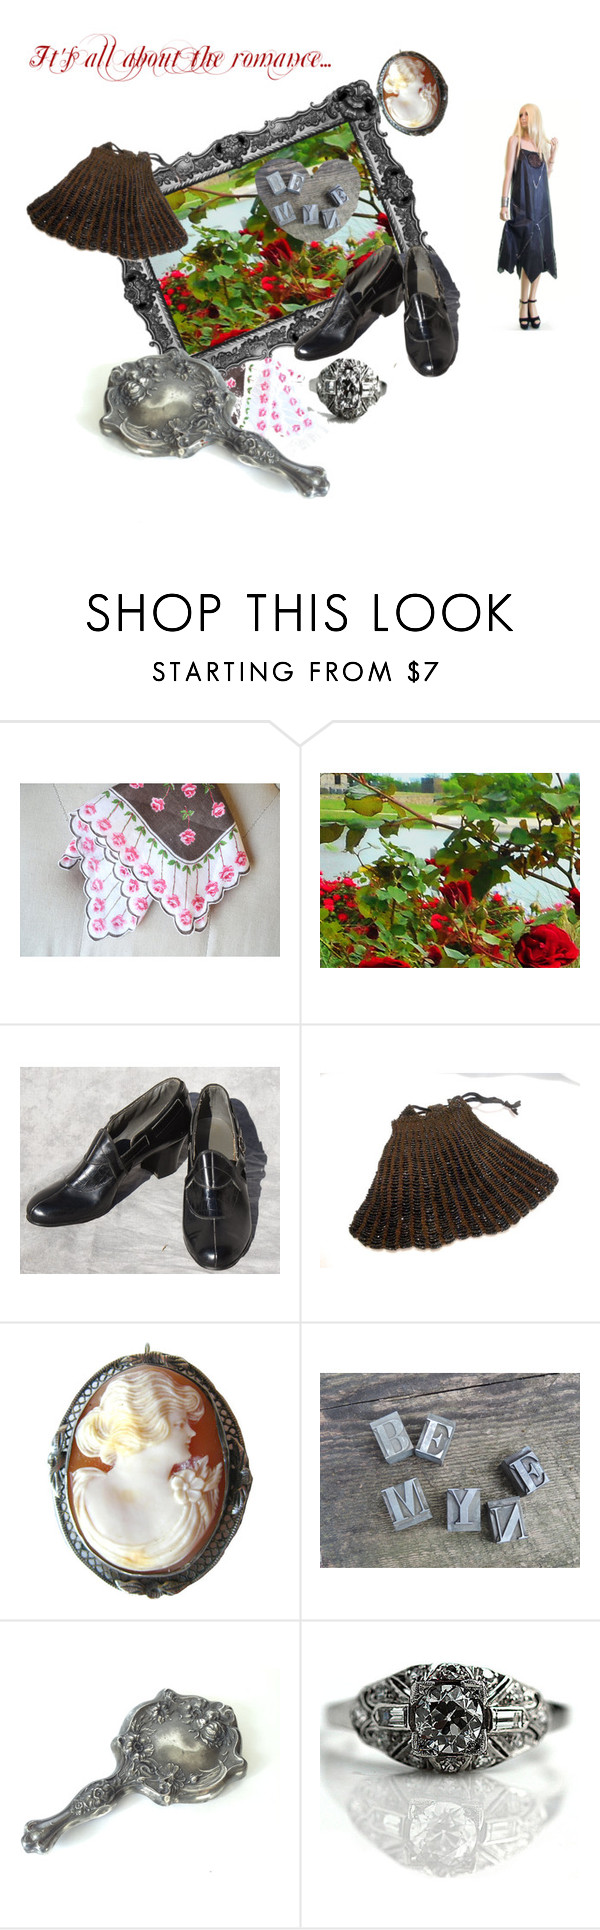 """It's all about the romance..."" by starshinevintage ❤ liked on Polyvore featuring Empire Silver and vogueteam"